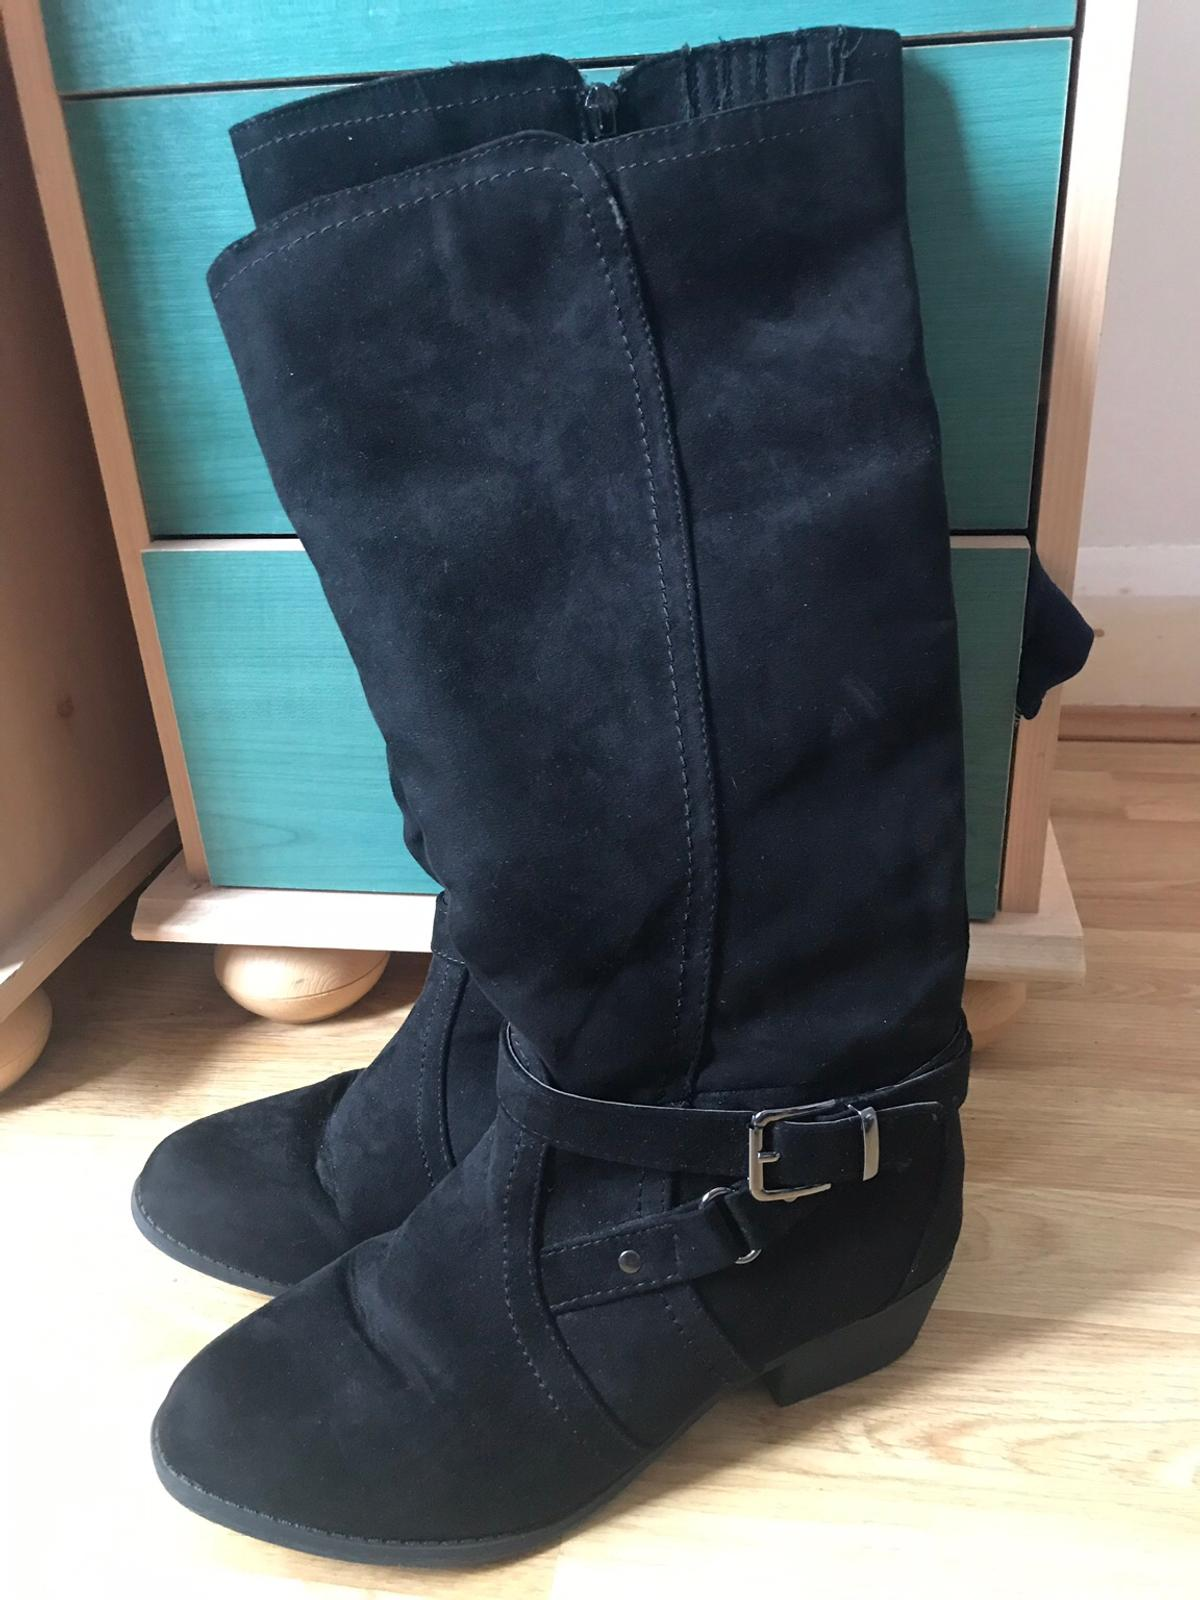 21d96fd81bd Wide fit size 7 knee boots in Barnsley for £10.00 for sale - Shpock